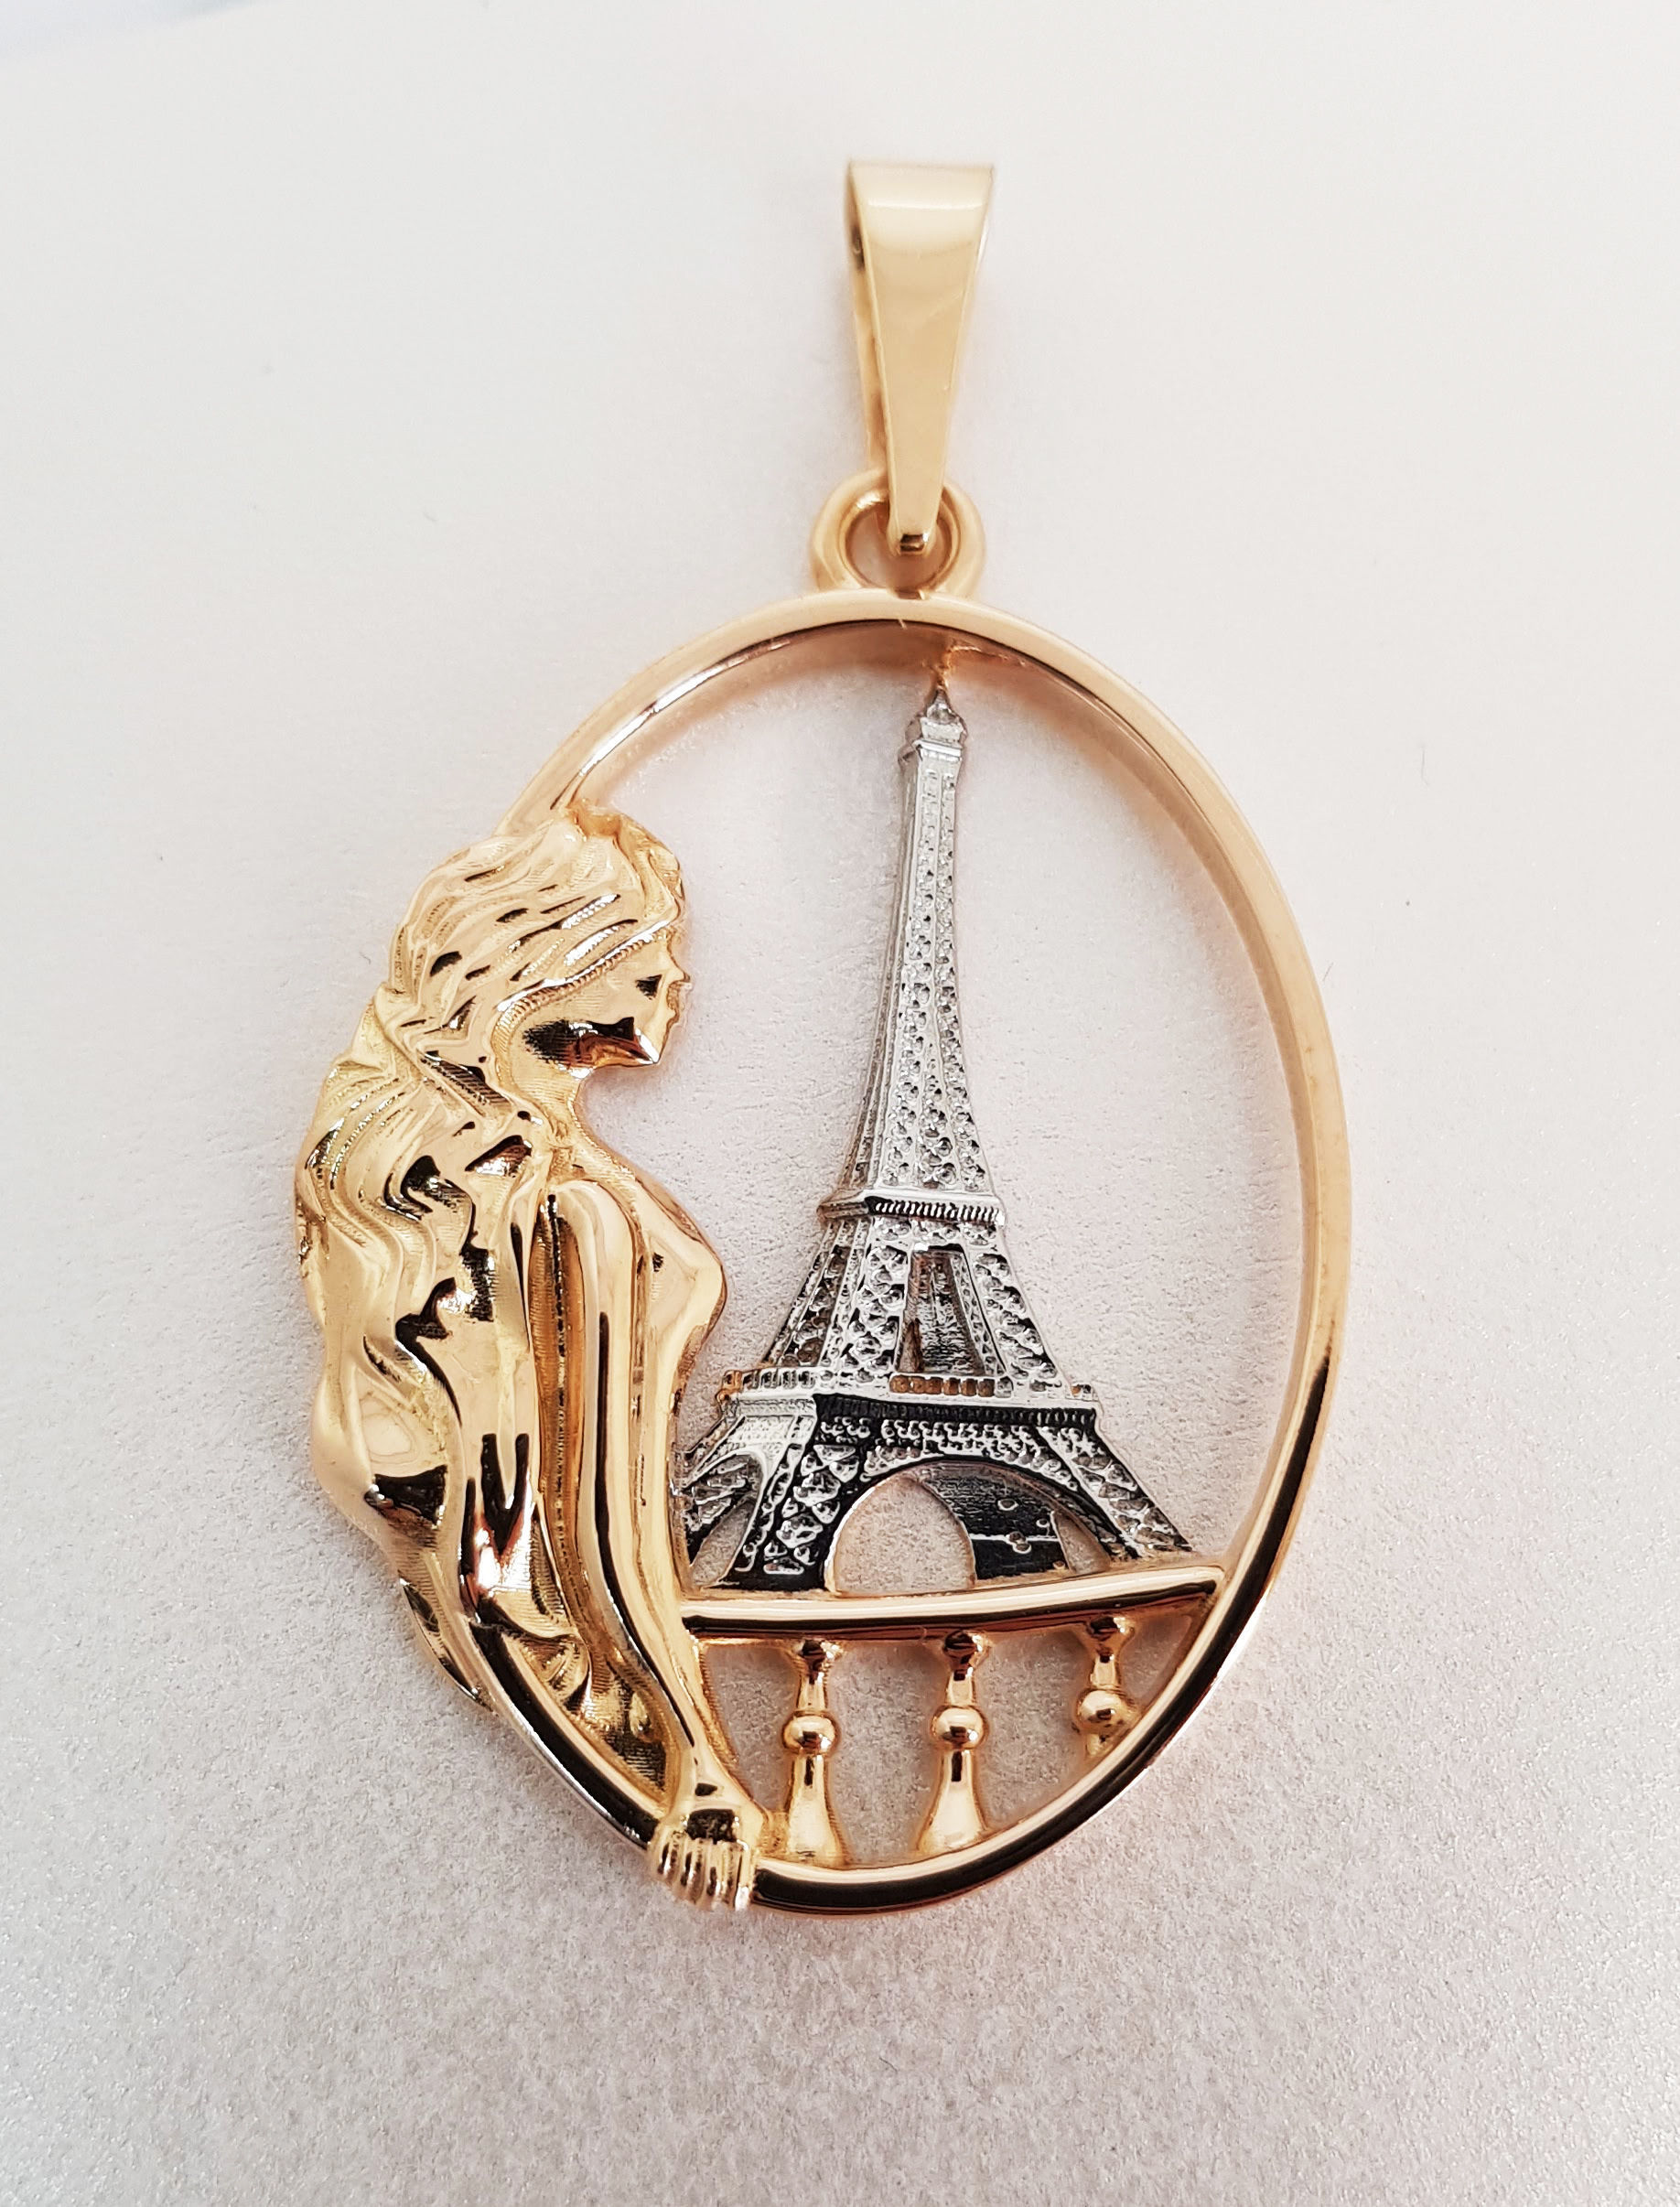 The Gold Pendant Girl on the balcony and Eiffel Tower